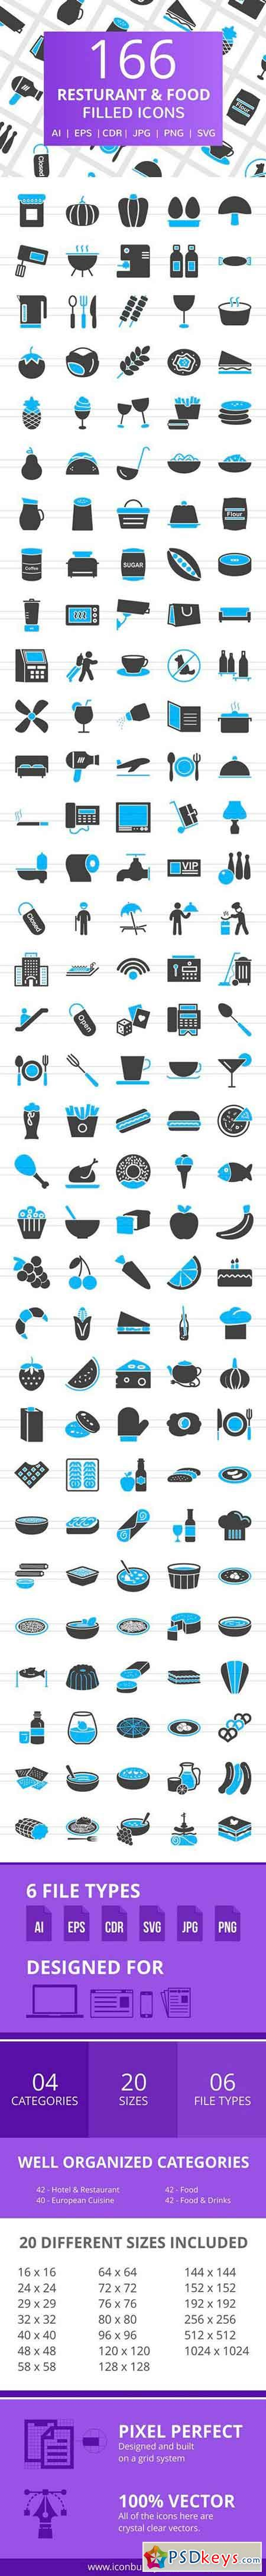 166 Restaurant & Food Filled Icons 2516990